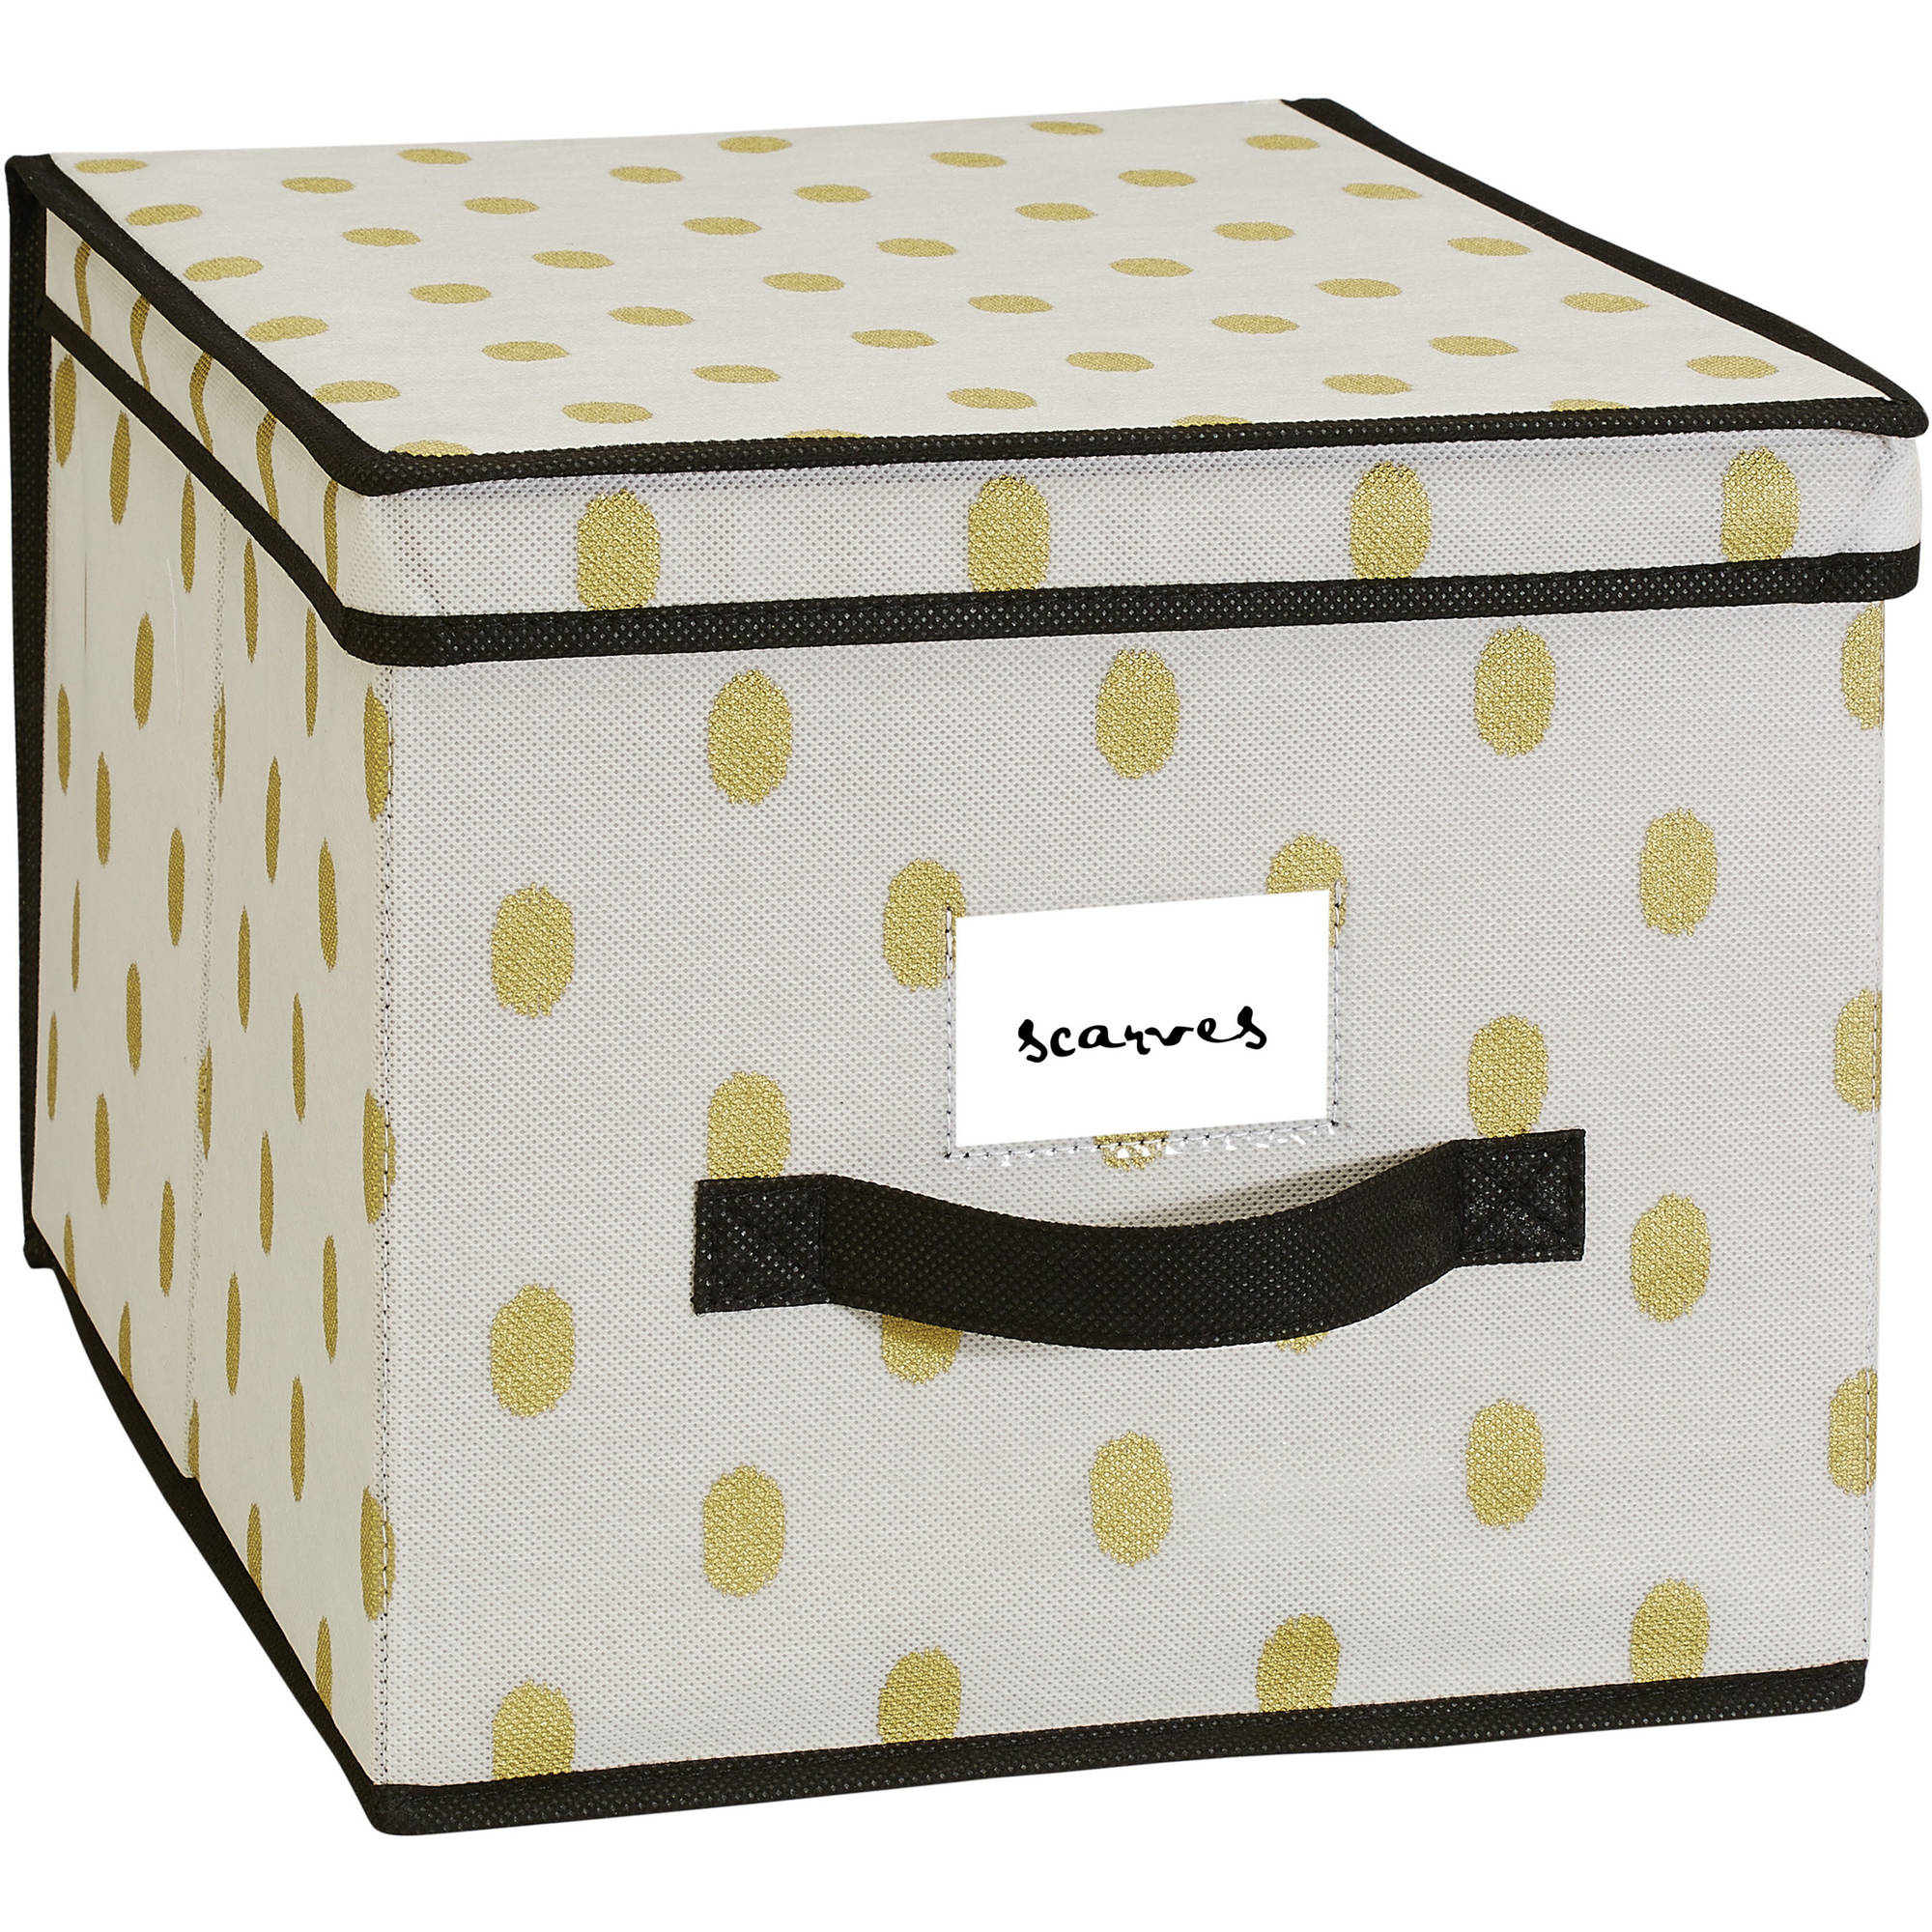 "NW Storage Box, 12"" x 16"" x 10"", White/Gold Dot"